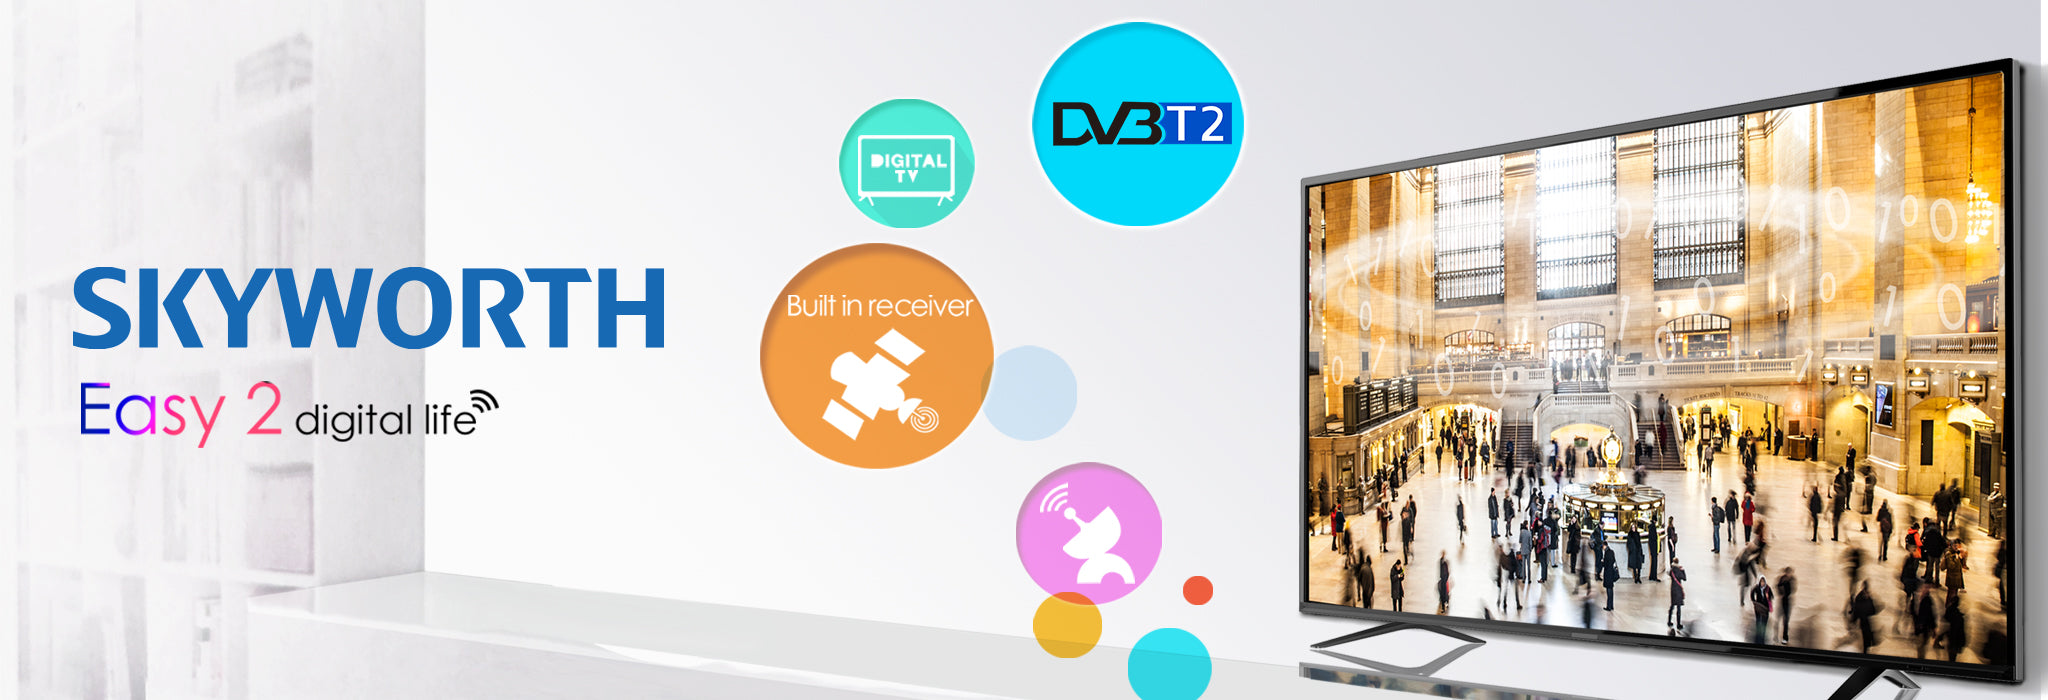 Skyworth TV's | Asters Maldives  great prices, 1 Year warranty